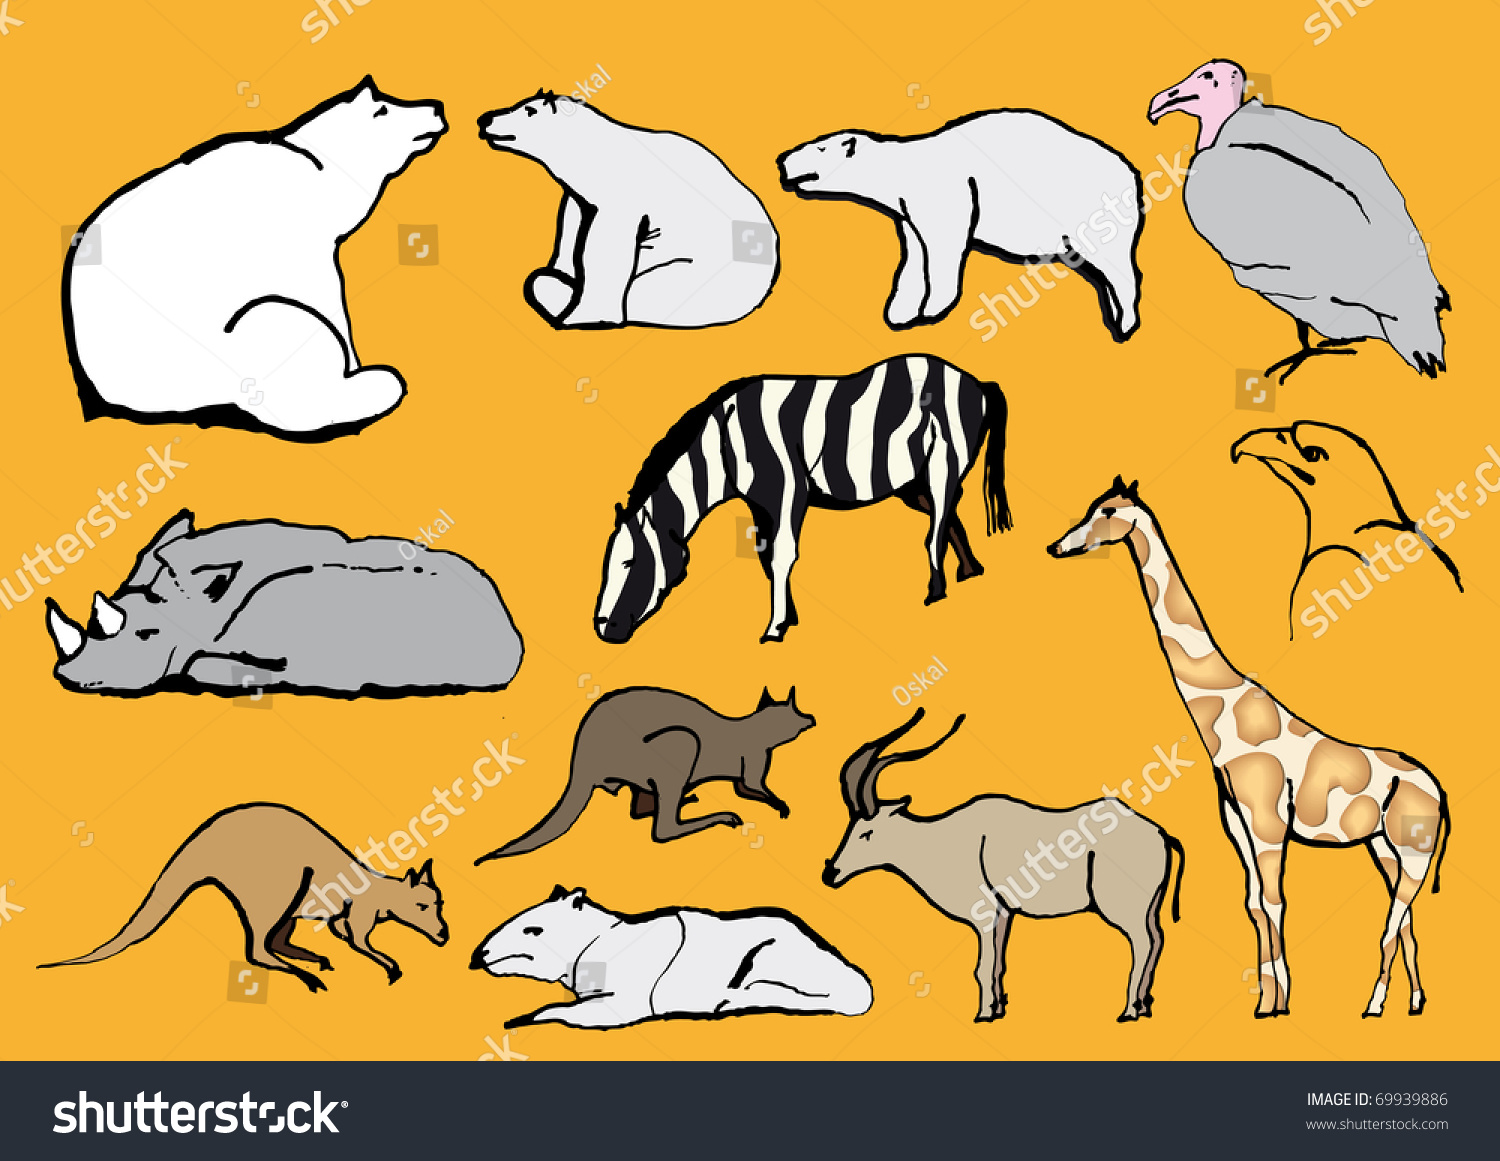 Line Drawings Of Zoo Animals : Line drawing exotic animals zoo stock vector illustration